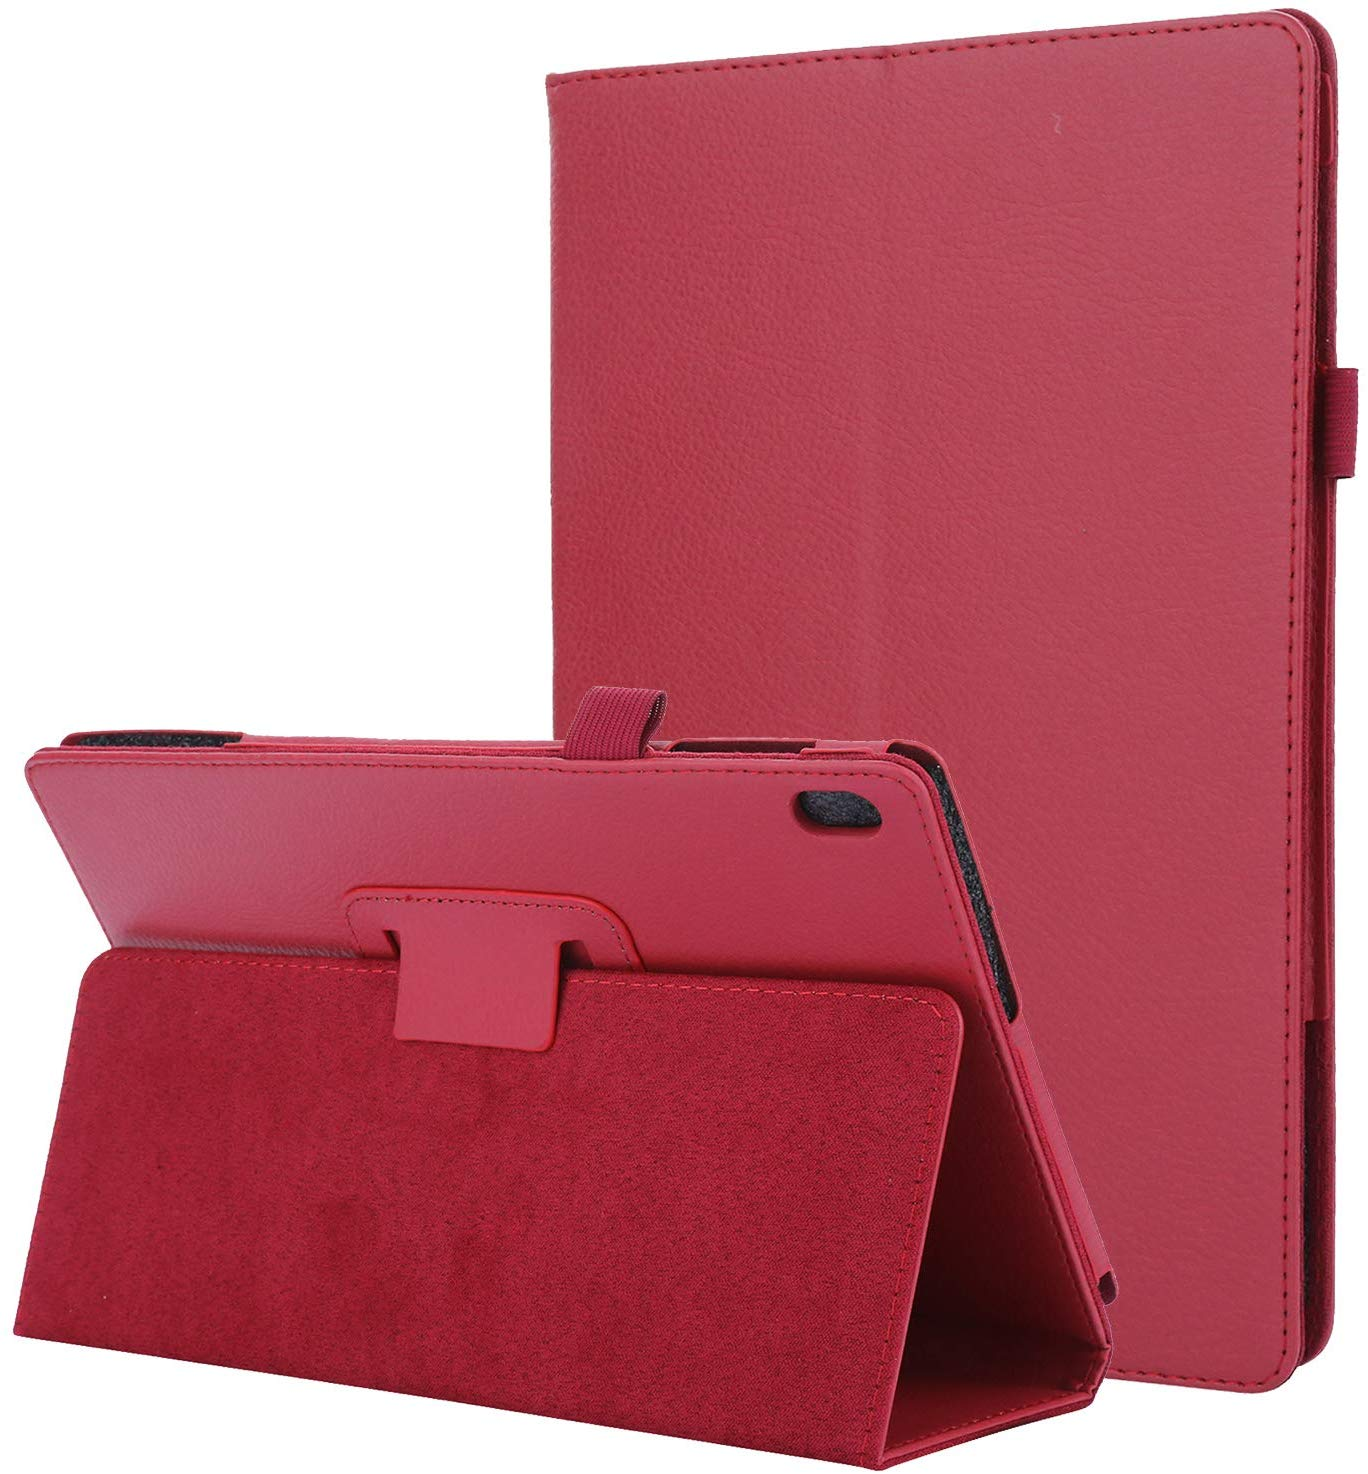 <font><b>Case</b></font> for <font><b>Lenovo</b></font> Tab P10 <font><b>TB</b></font>-<font><b>X705L</b></font> 10.1 Auto Sleep Wake Up PU Leather Cover For <font><b>Lenovo</b></font> Tab M10 10.1 <font><b>TB</b></font>-X605L Full Body Protective image